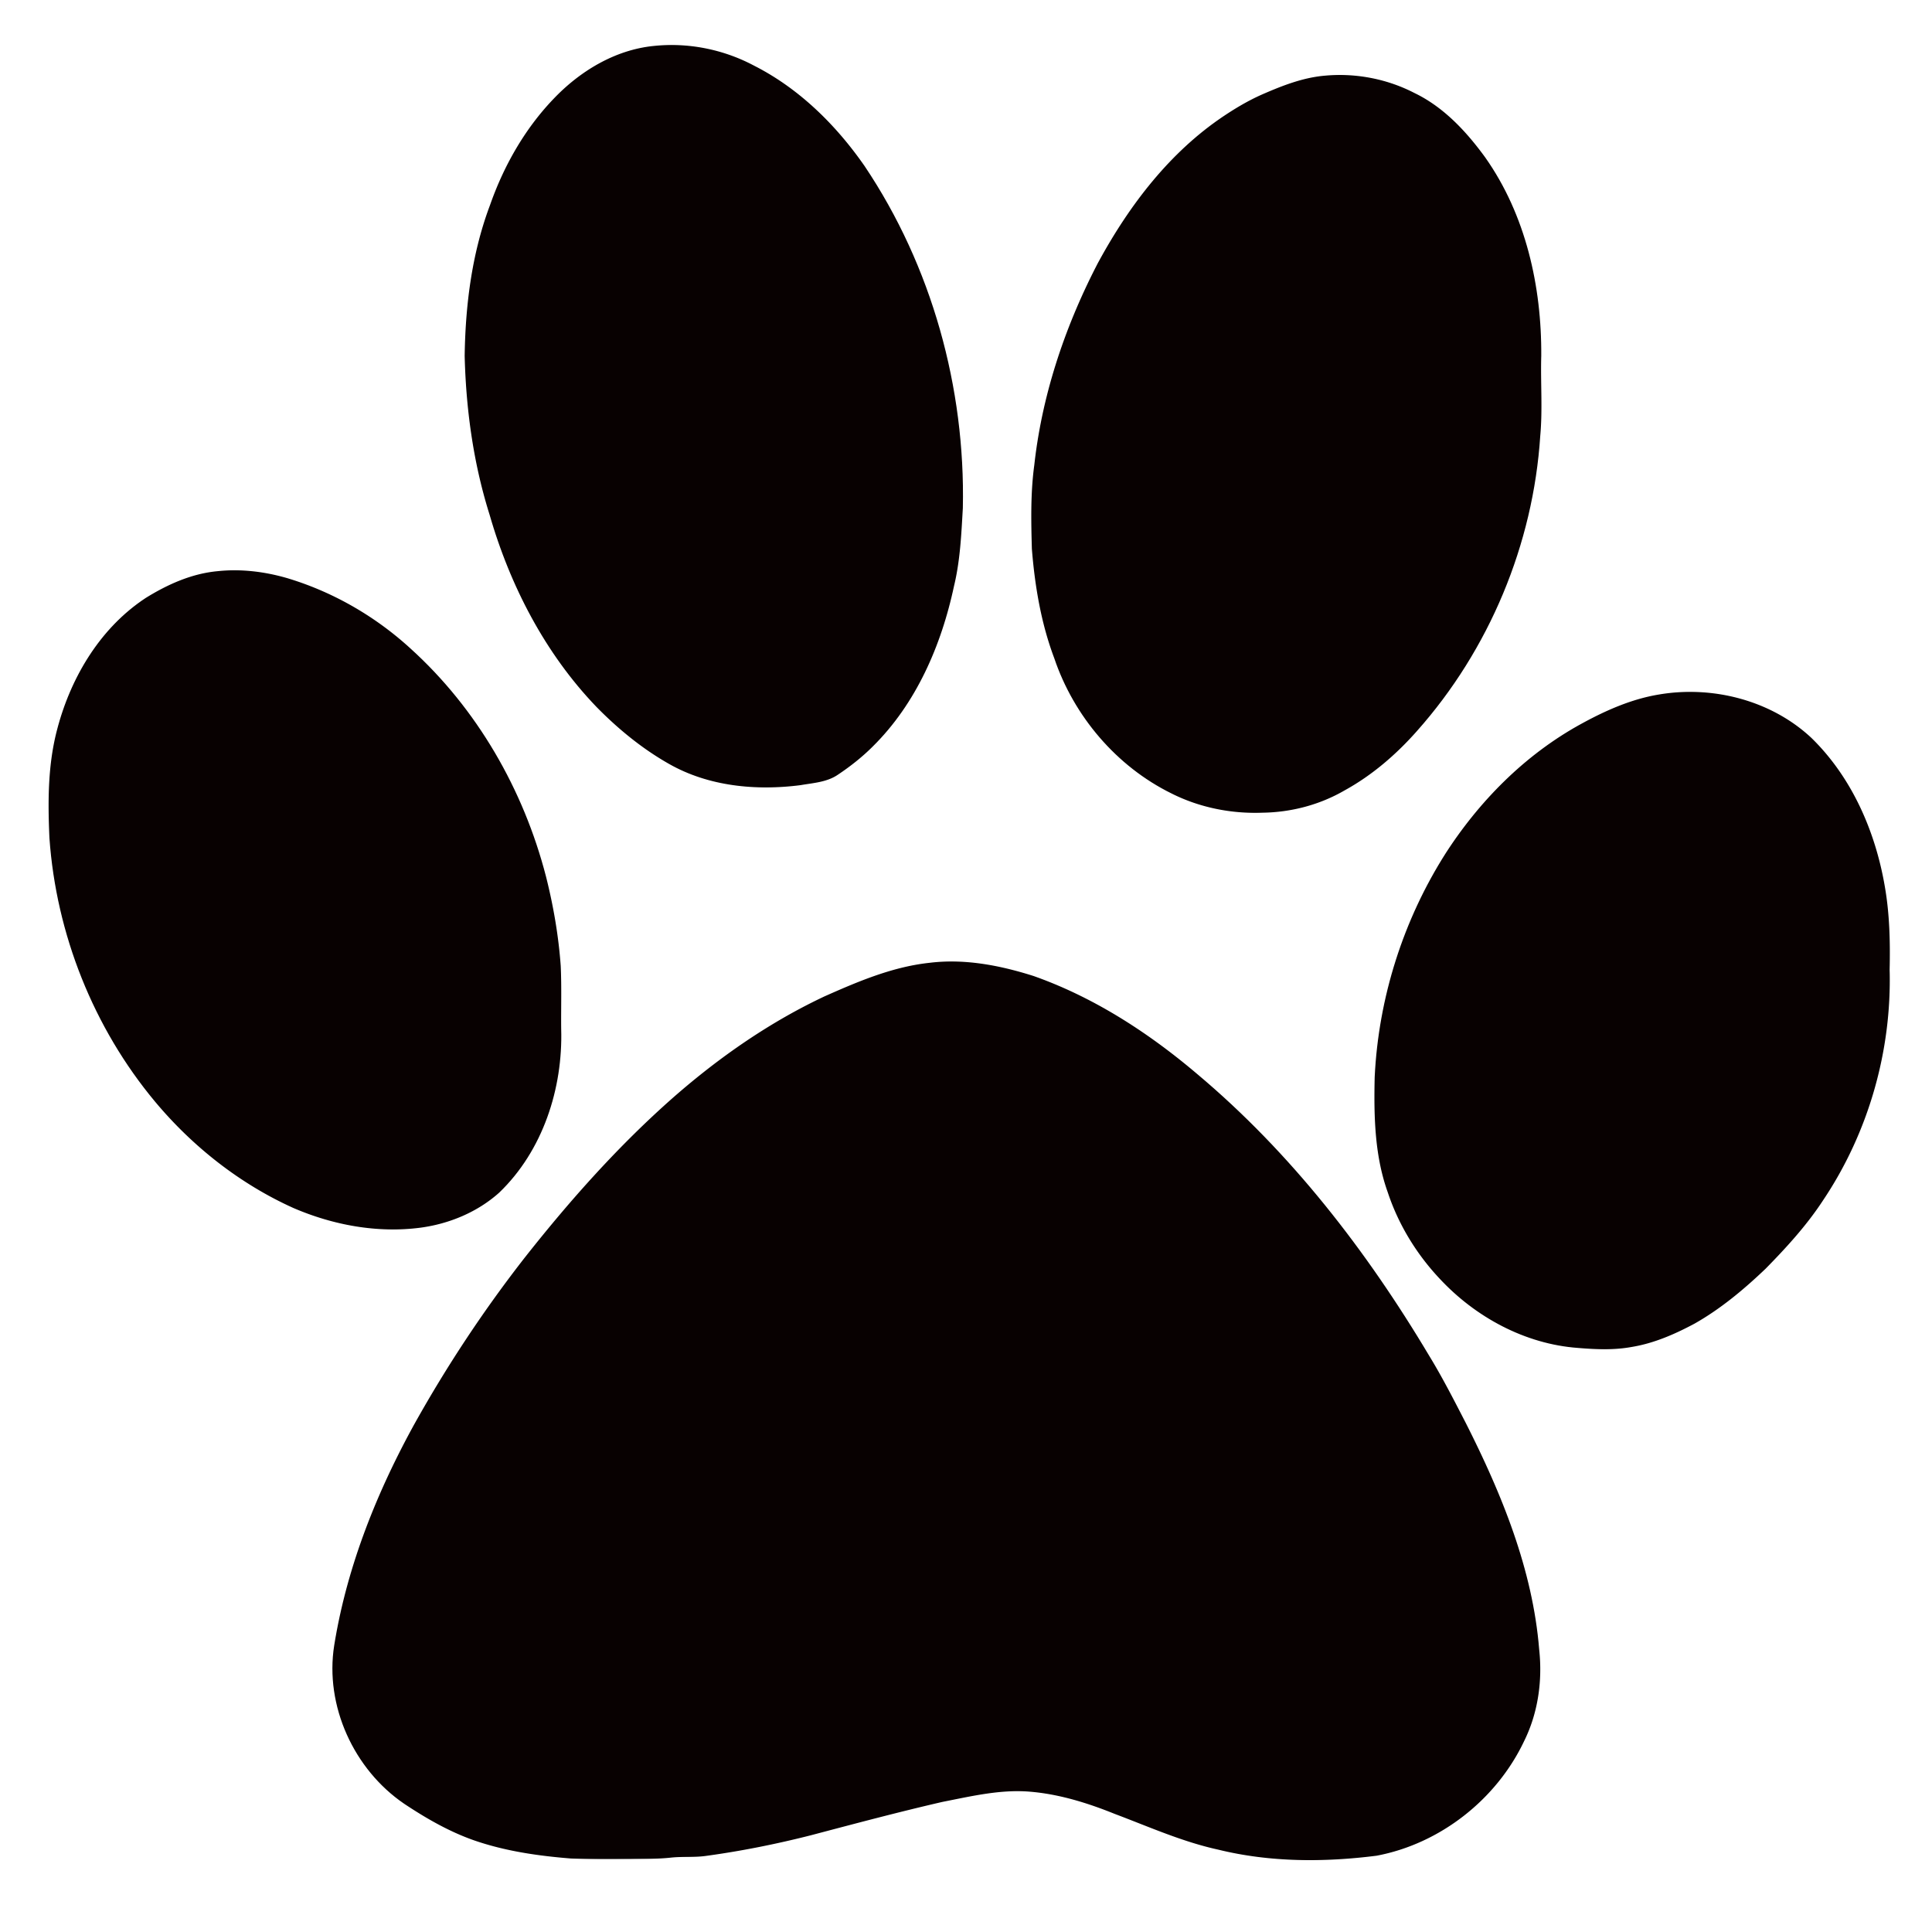 svg royalty free library Paws clipart. Panther paw print clip